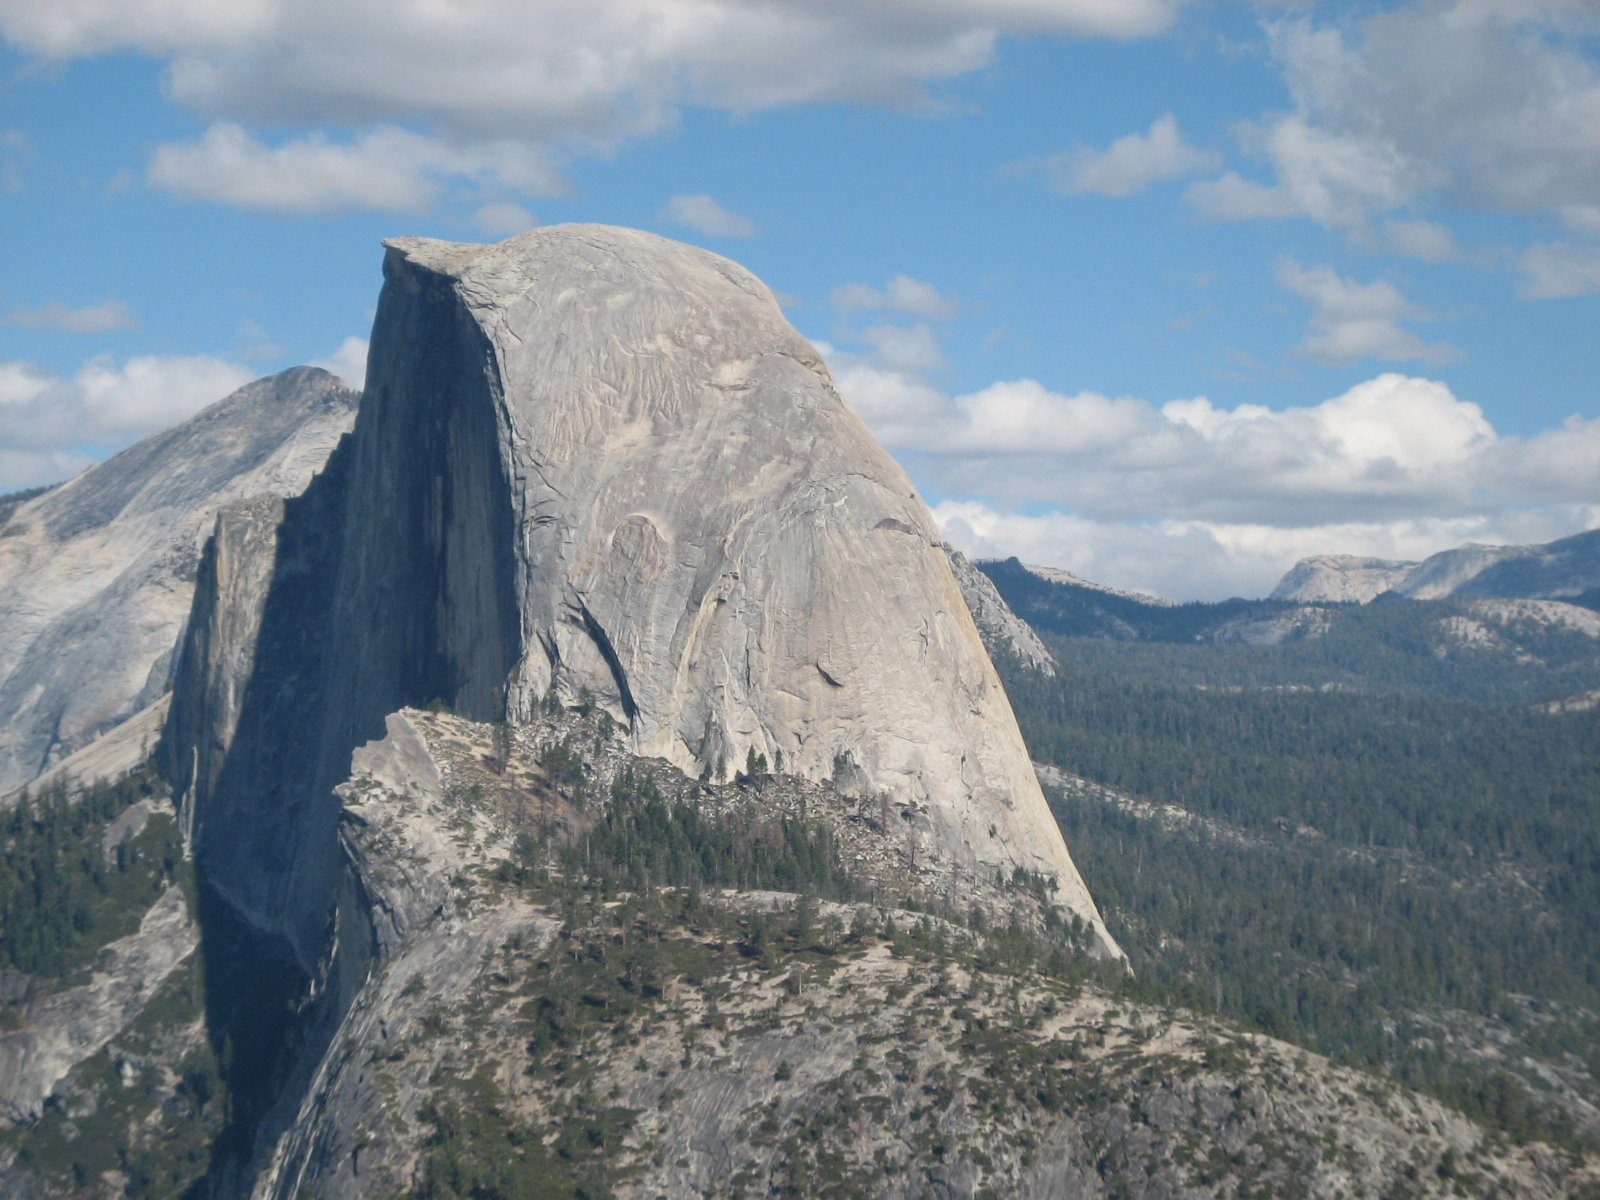 View of Half Dome with Clouds Rest in the background